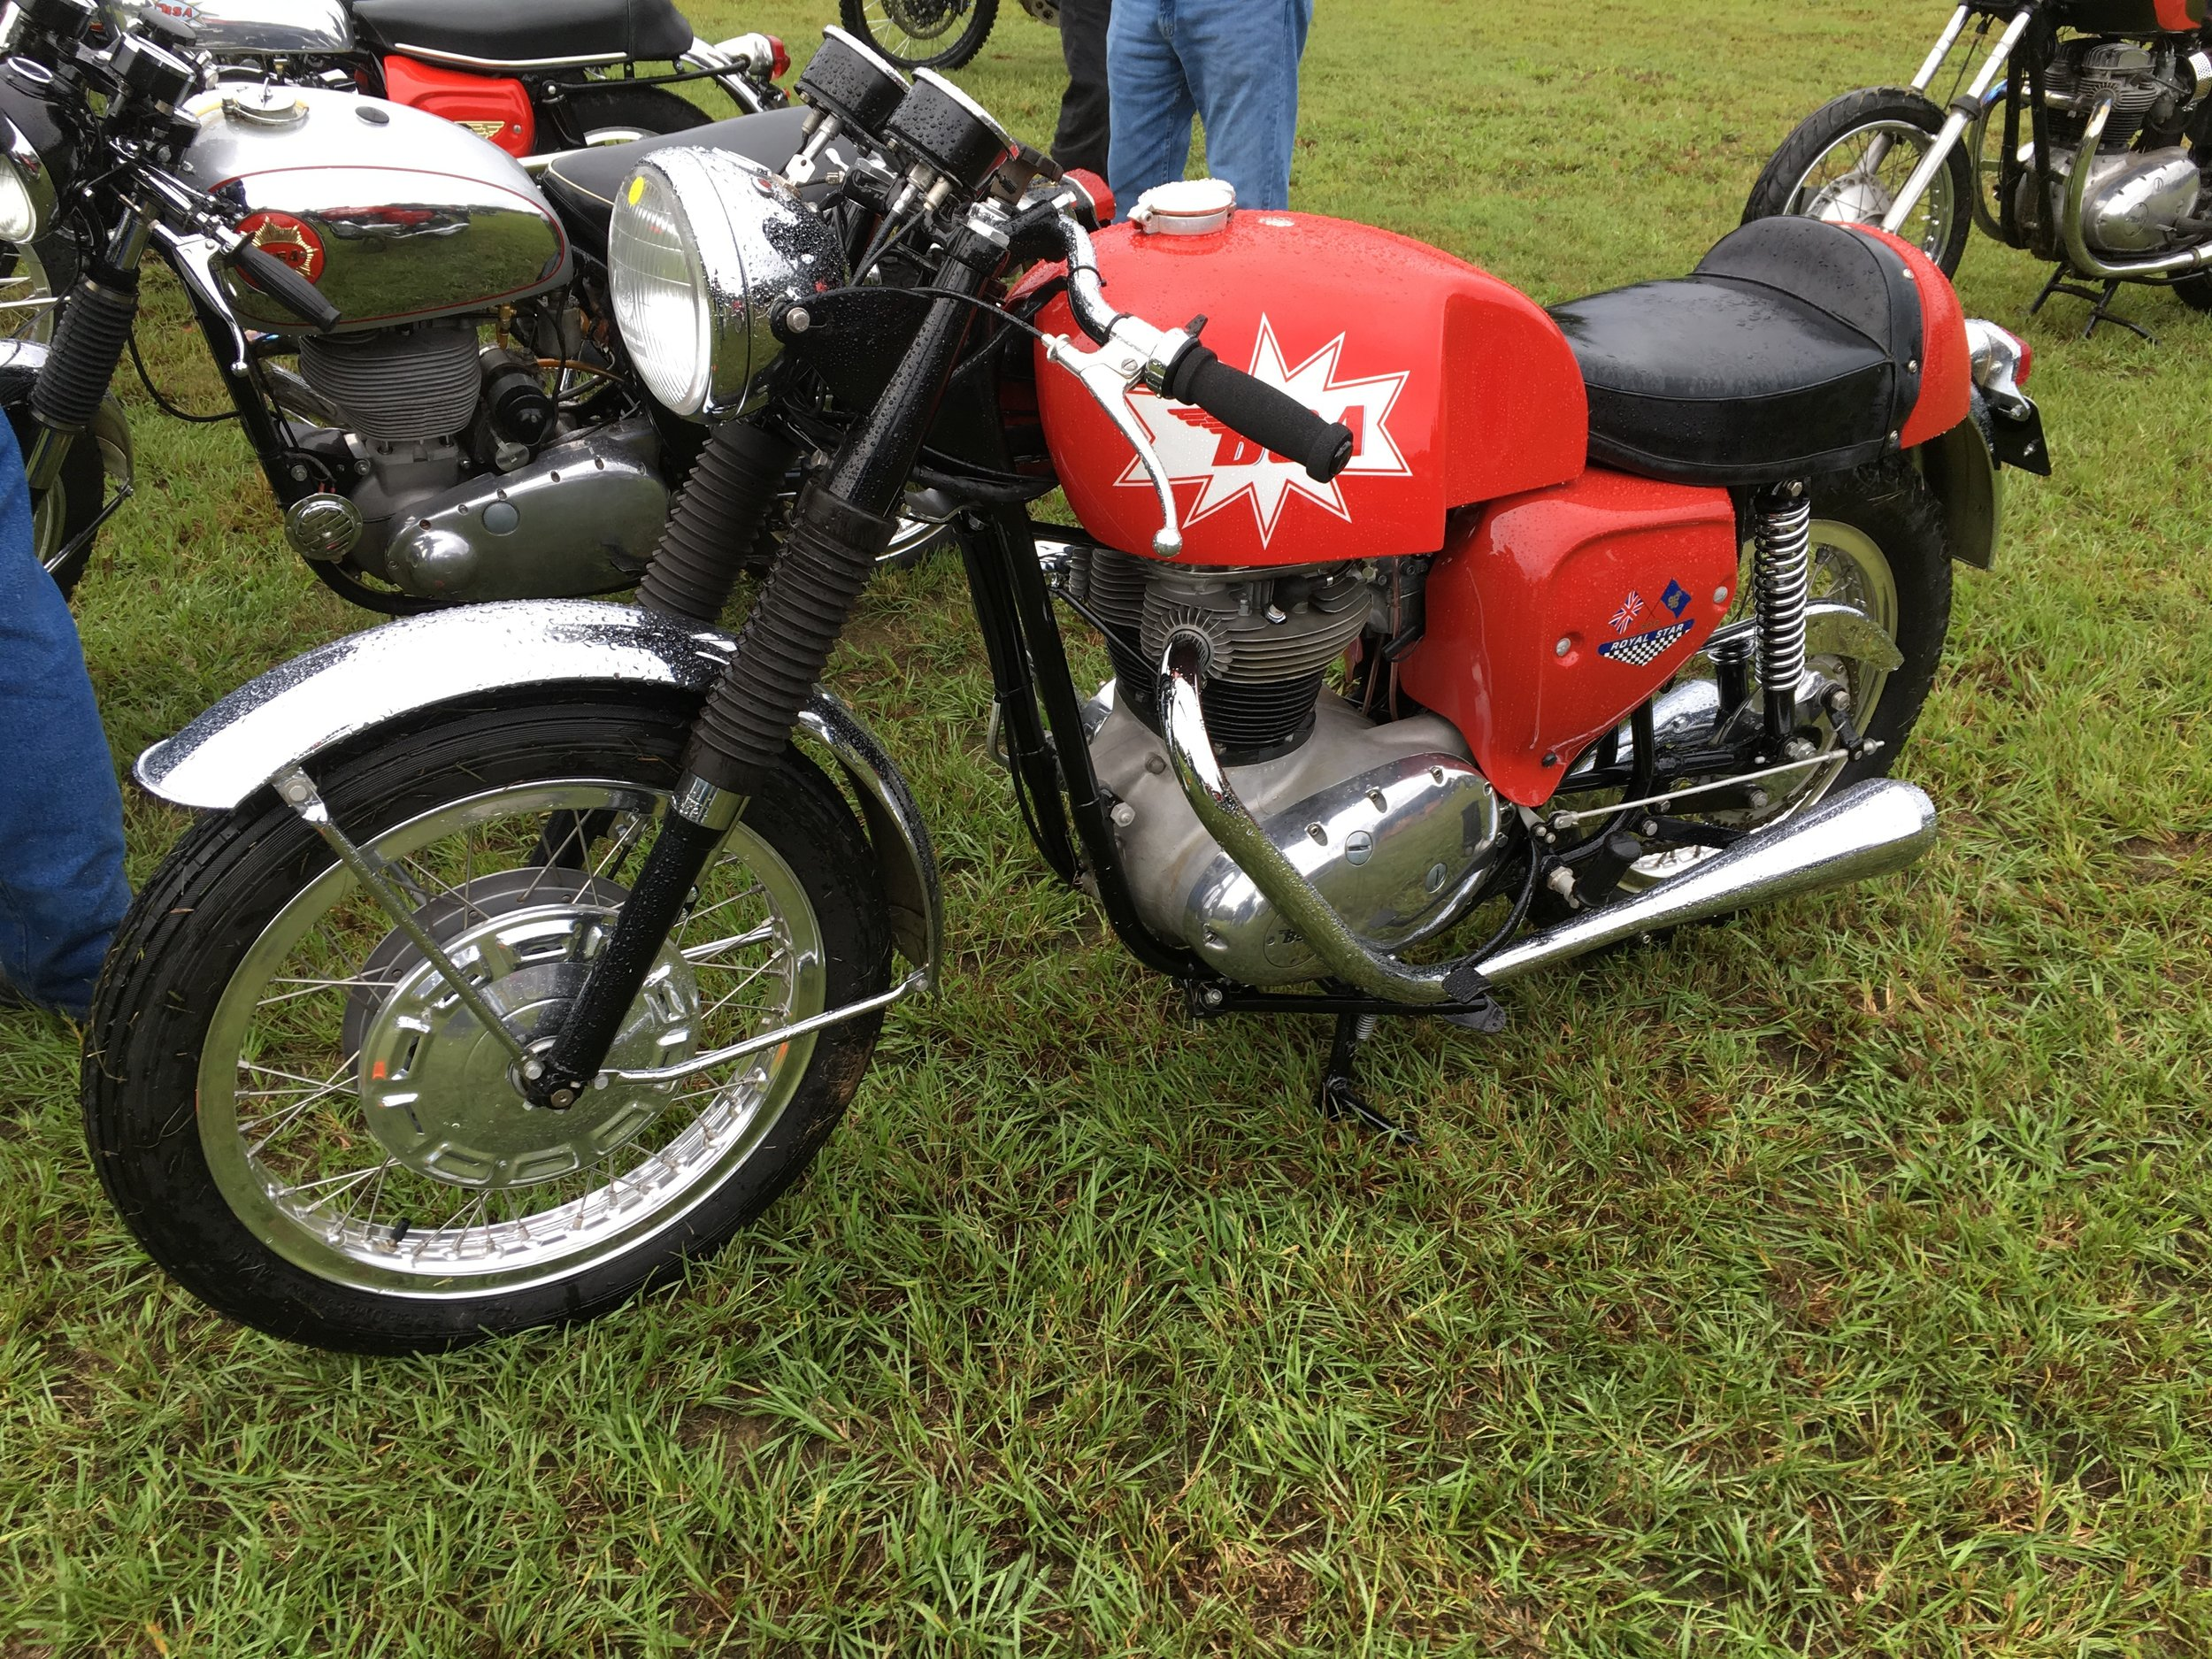 A couple of BSA beauties that caught my eye. Many of the bikes in the show were finely restored and modified, but there were grungy competition and street examples as well. By the end of the morning bike show, the rain was starting up again.